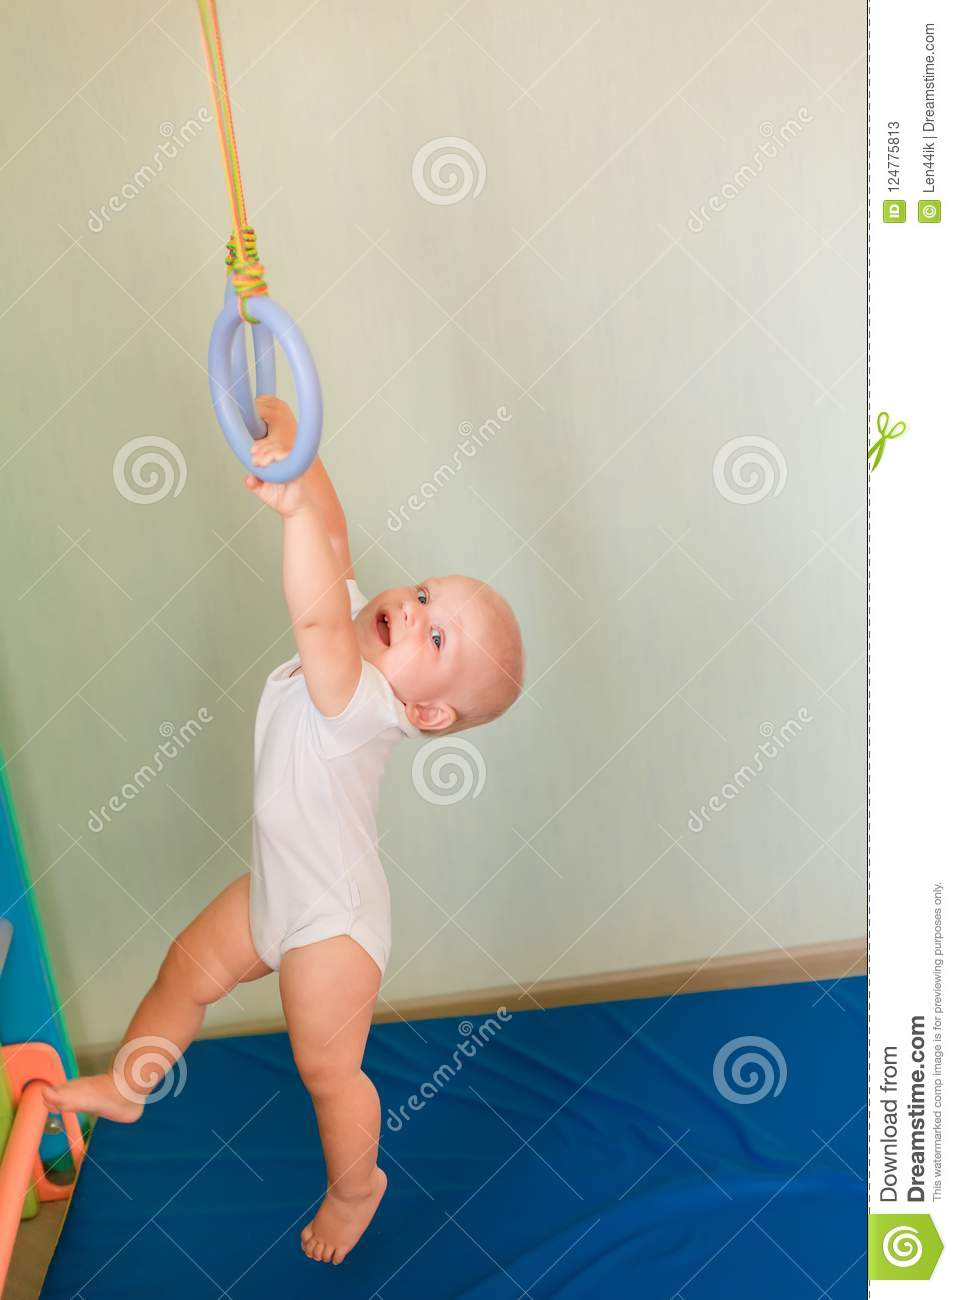 Cute baby boy hanging on rings on home wall gym stock image